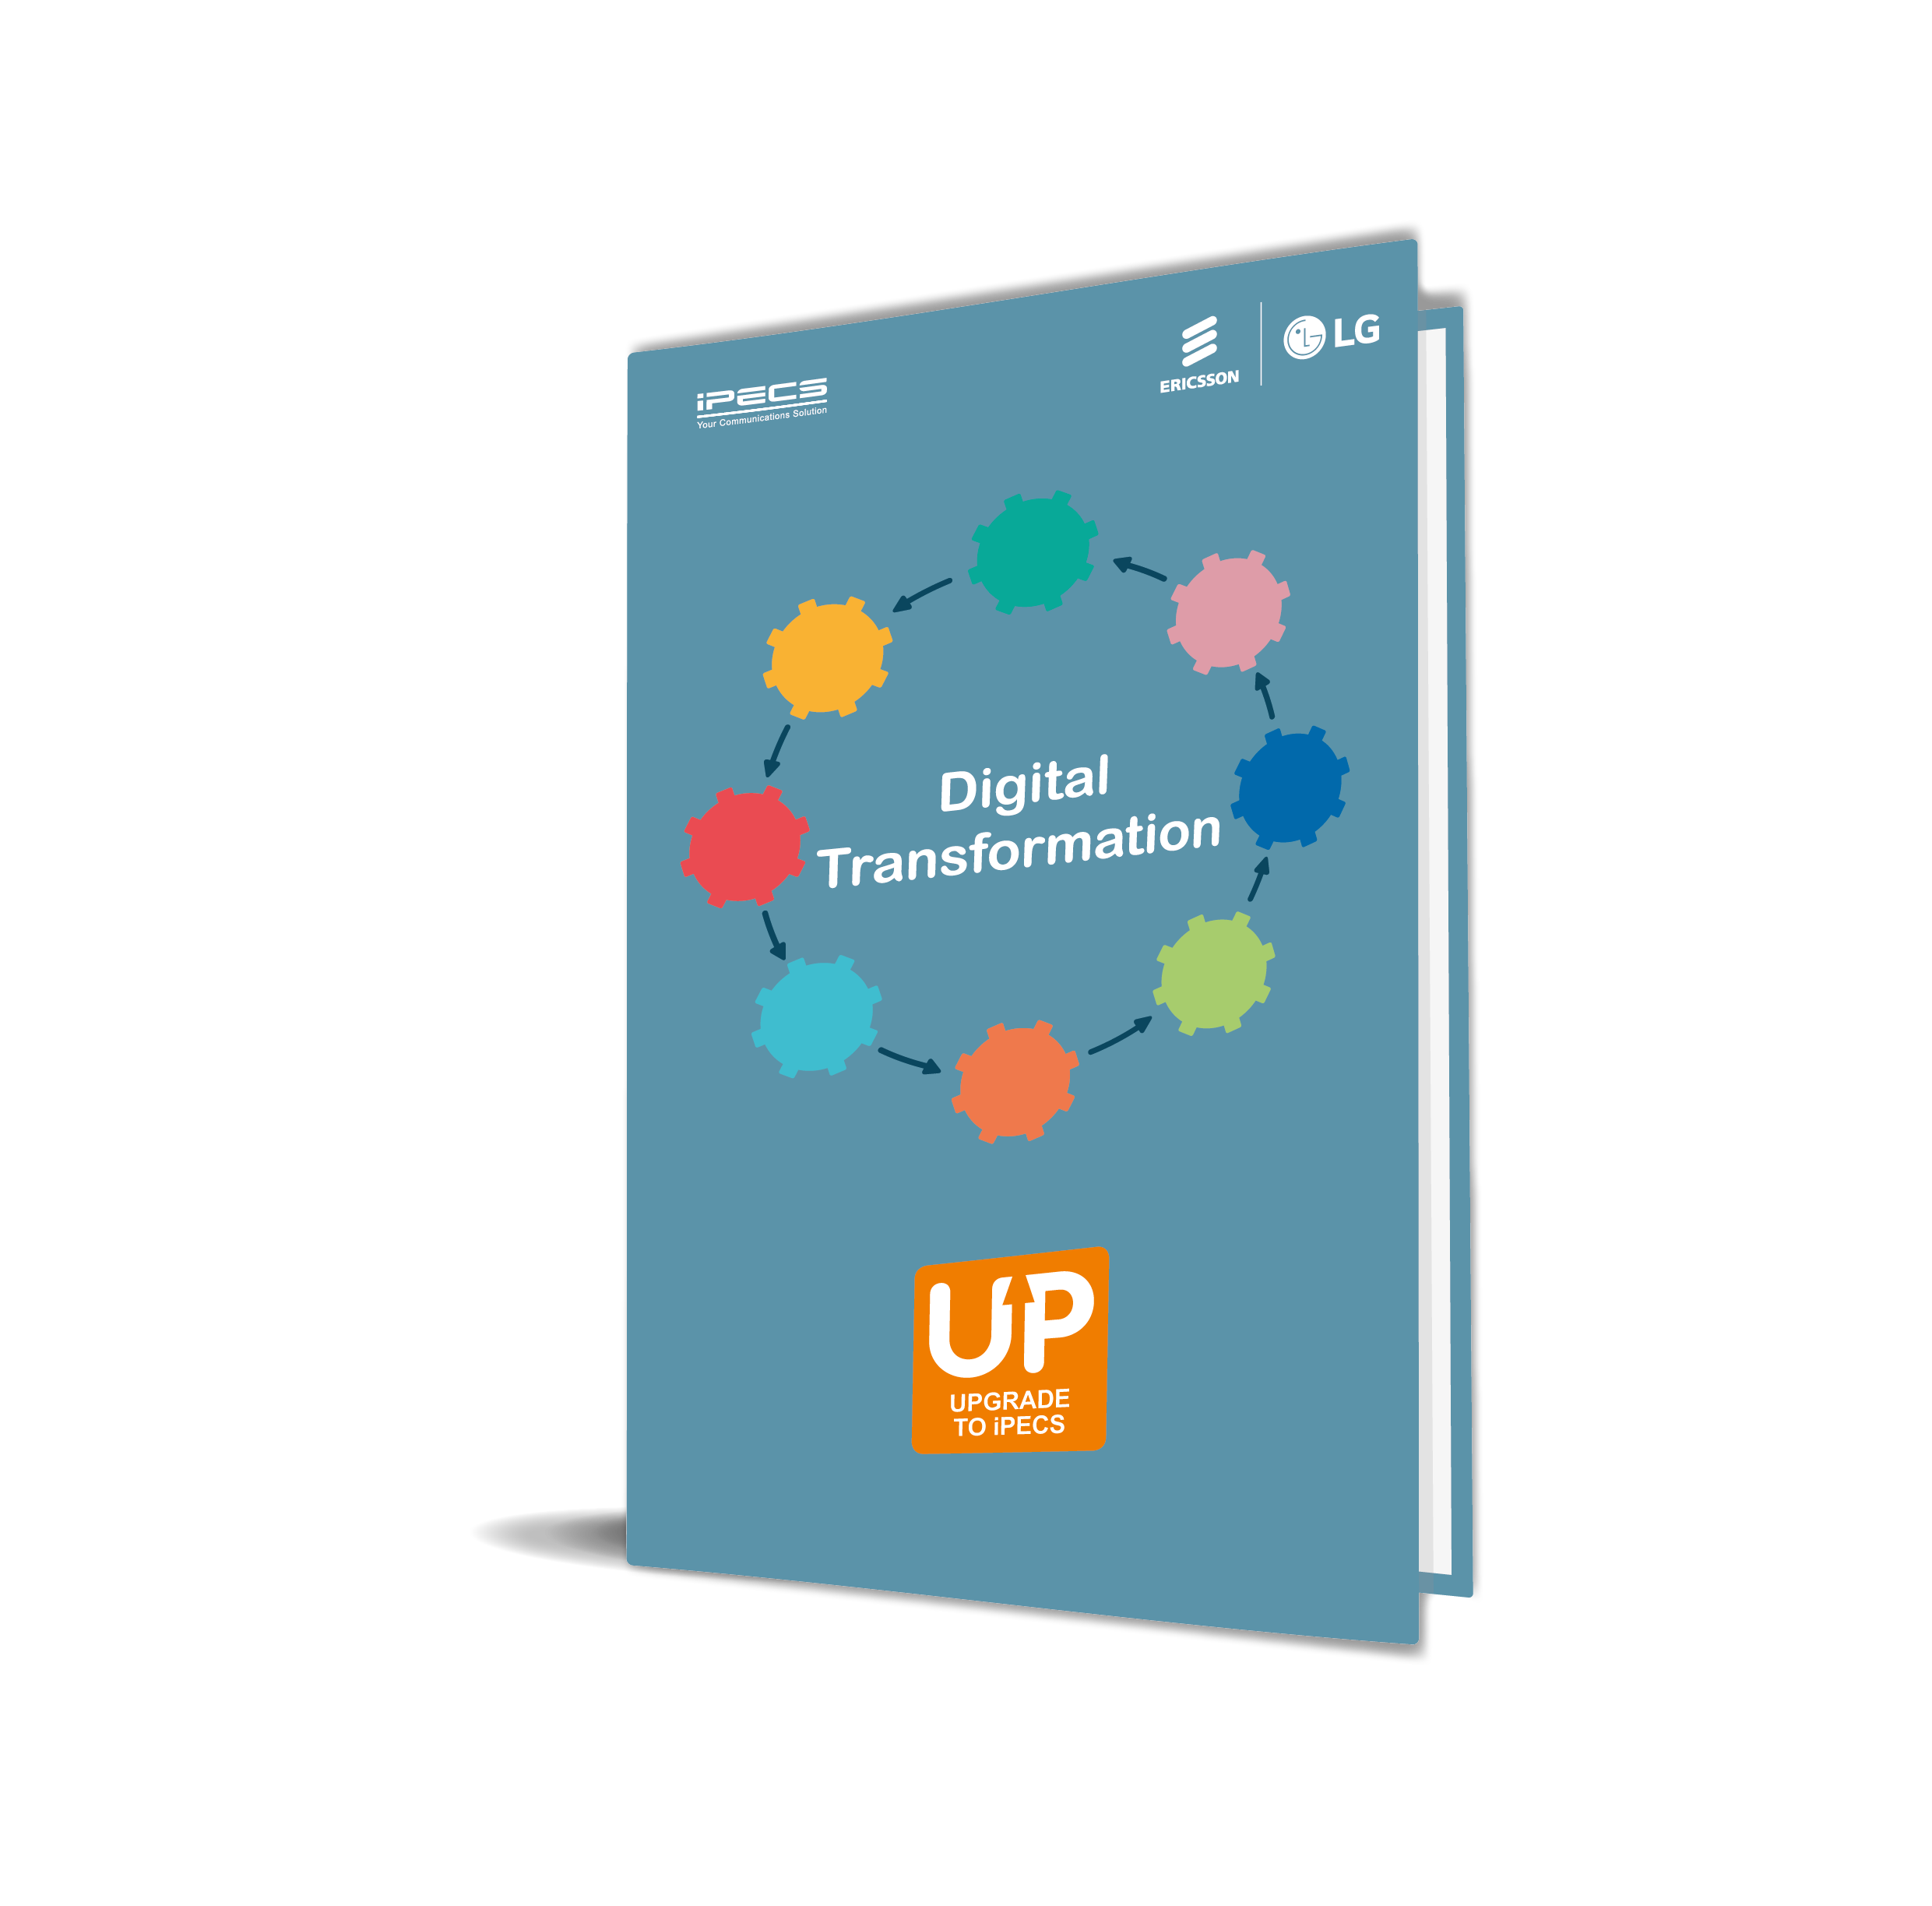 UP Campaign: Digital Transformation